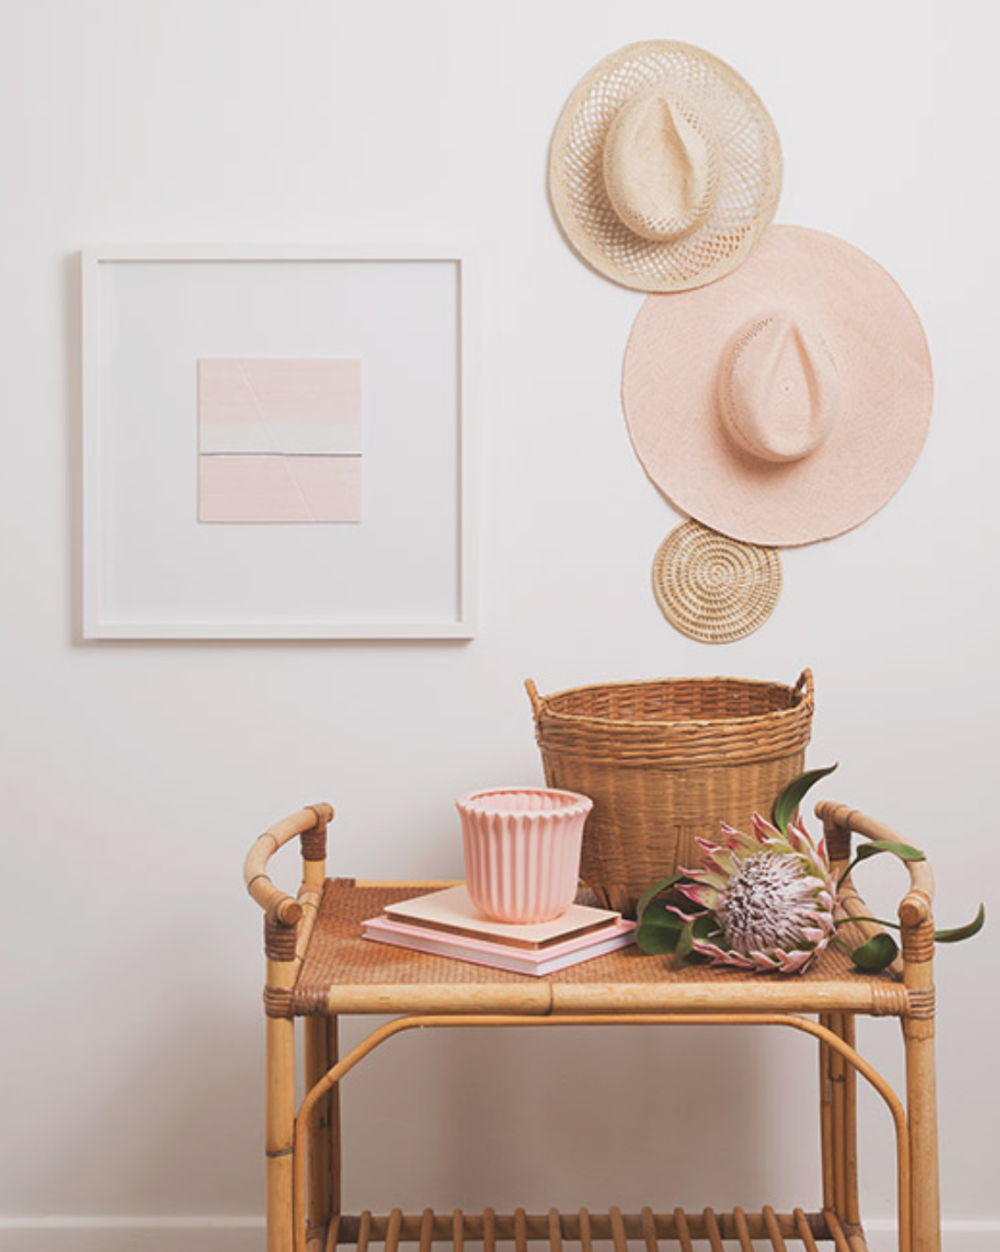 This vignette has a double dose of texture. Cutsie hats arranged over the rattan bar cart is obviously adorbs, but take note of the  Jane Denton  fiber art to the left. Her stuff is so perfectly minimal, textural and modern. Love it all. Check her out!